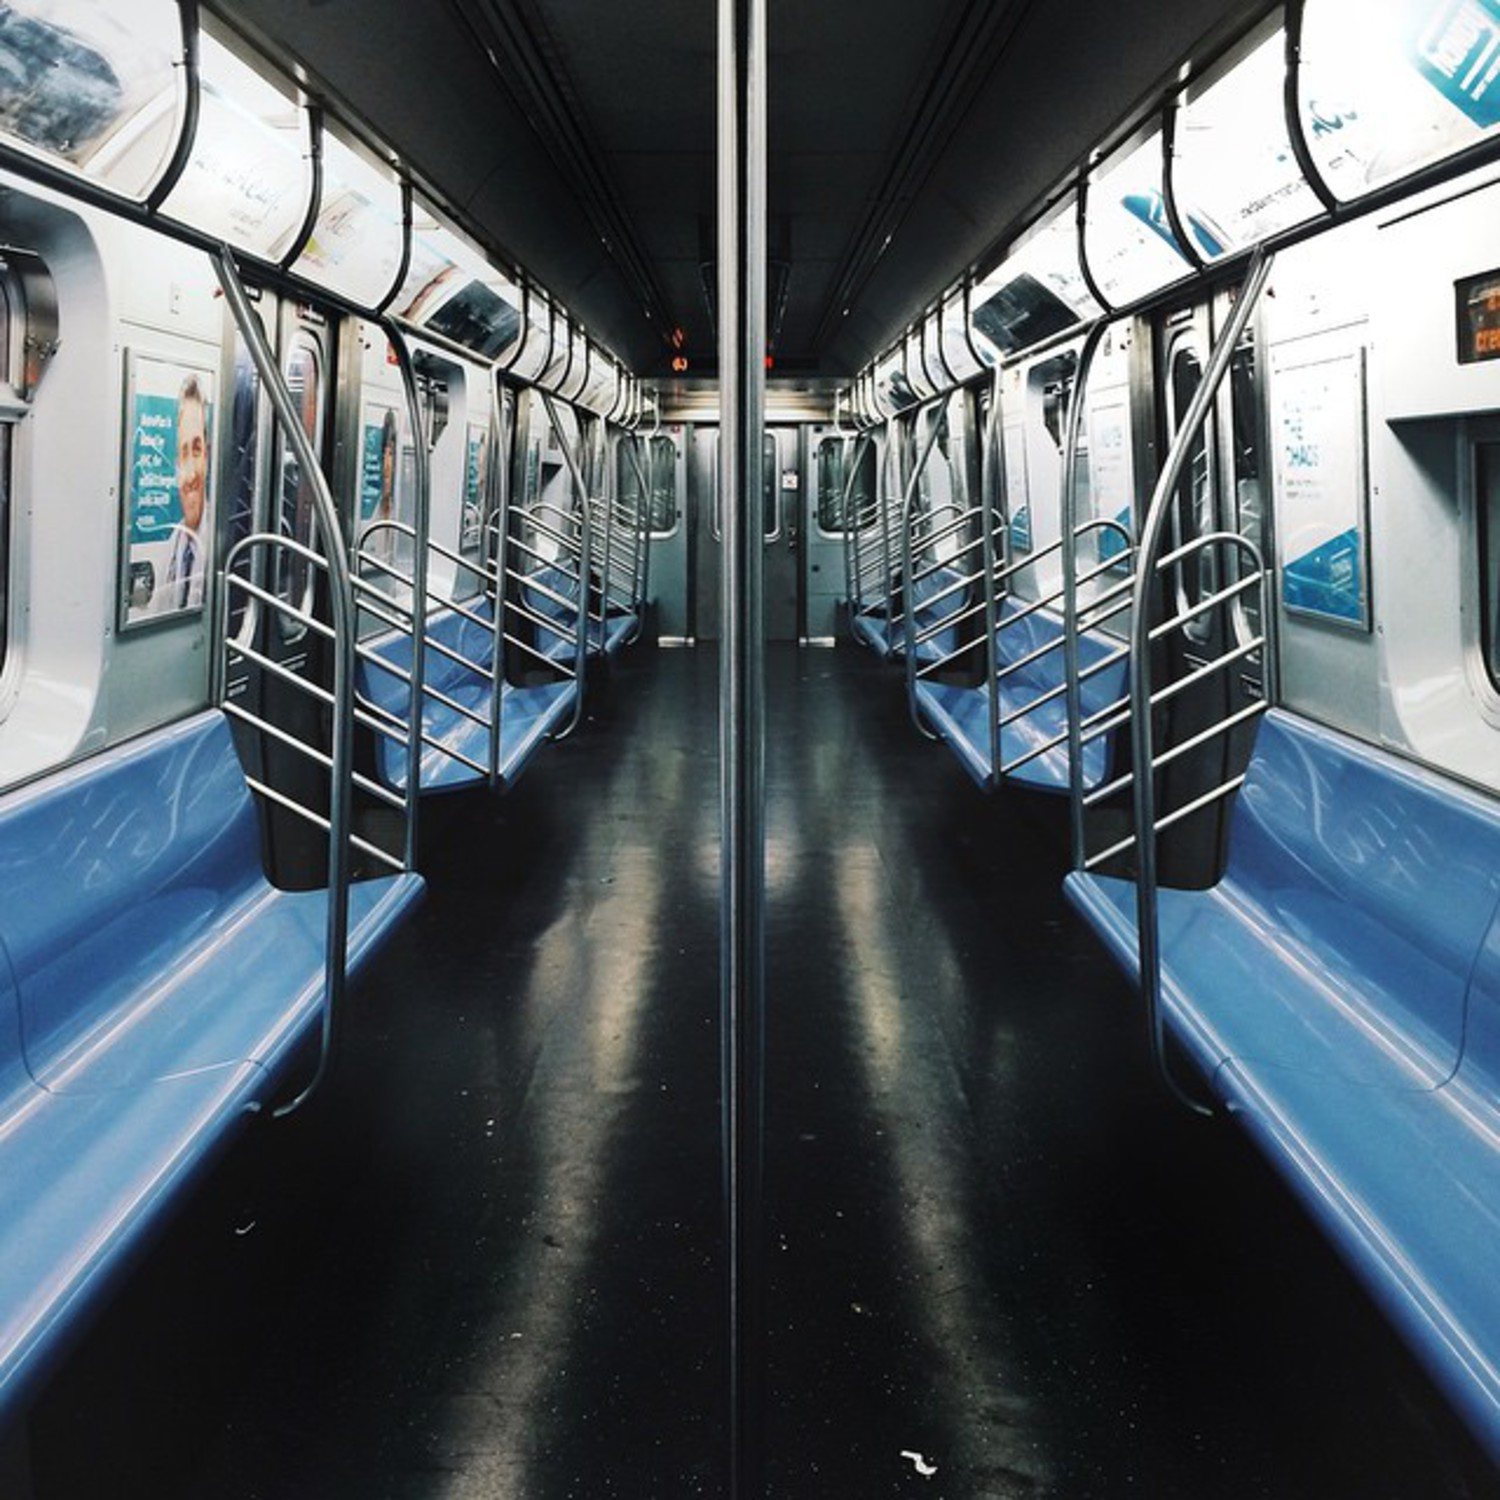 Symmetrical Subway Solitude #Ltrain #NYC #blue #black #symmetry #subway #NY #manhattan